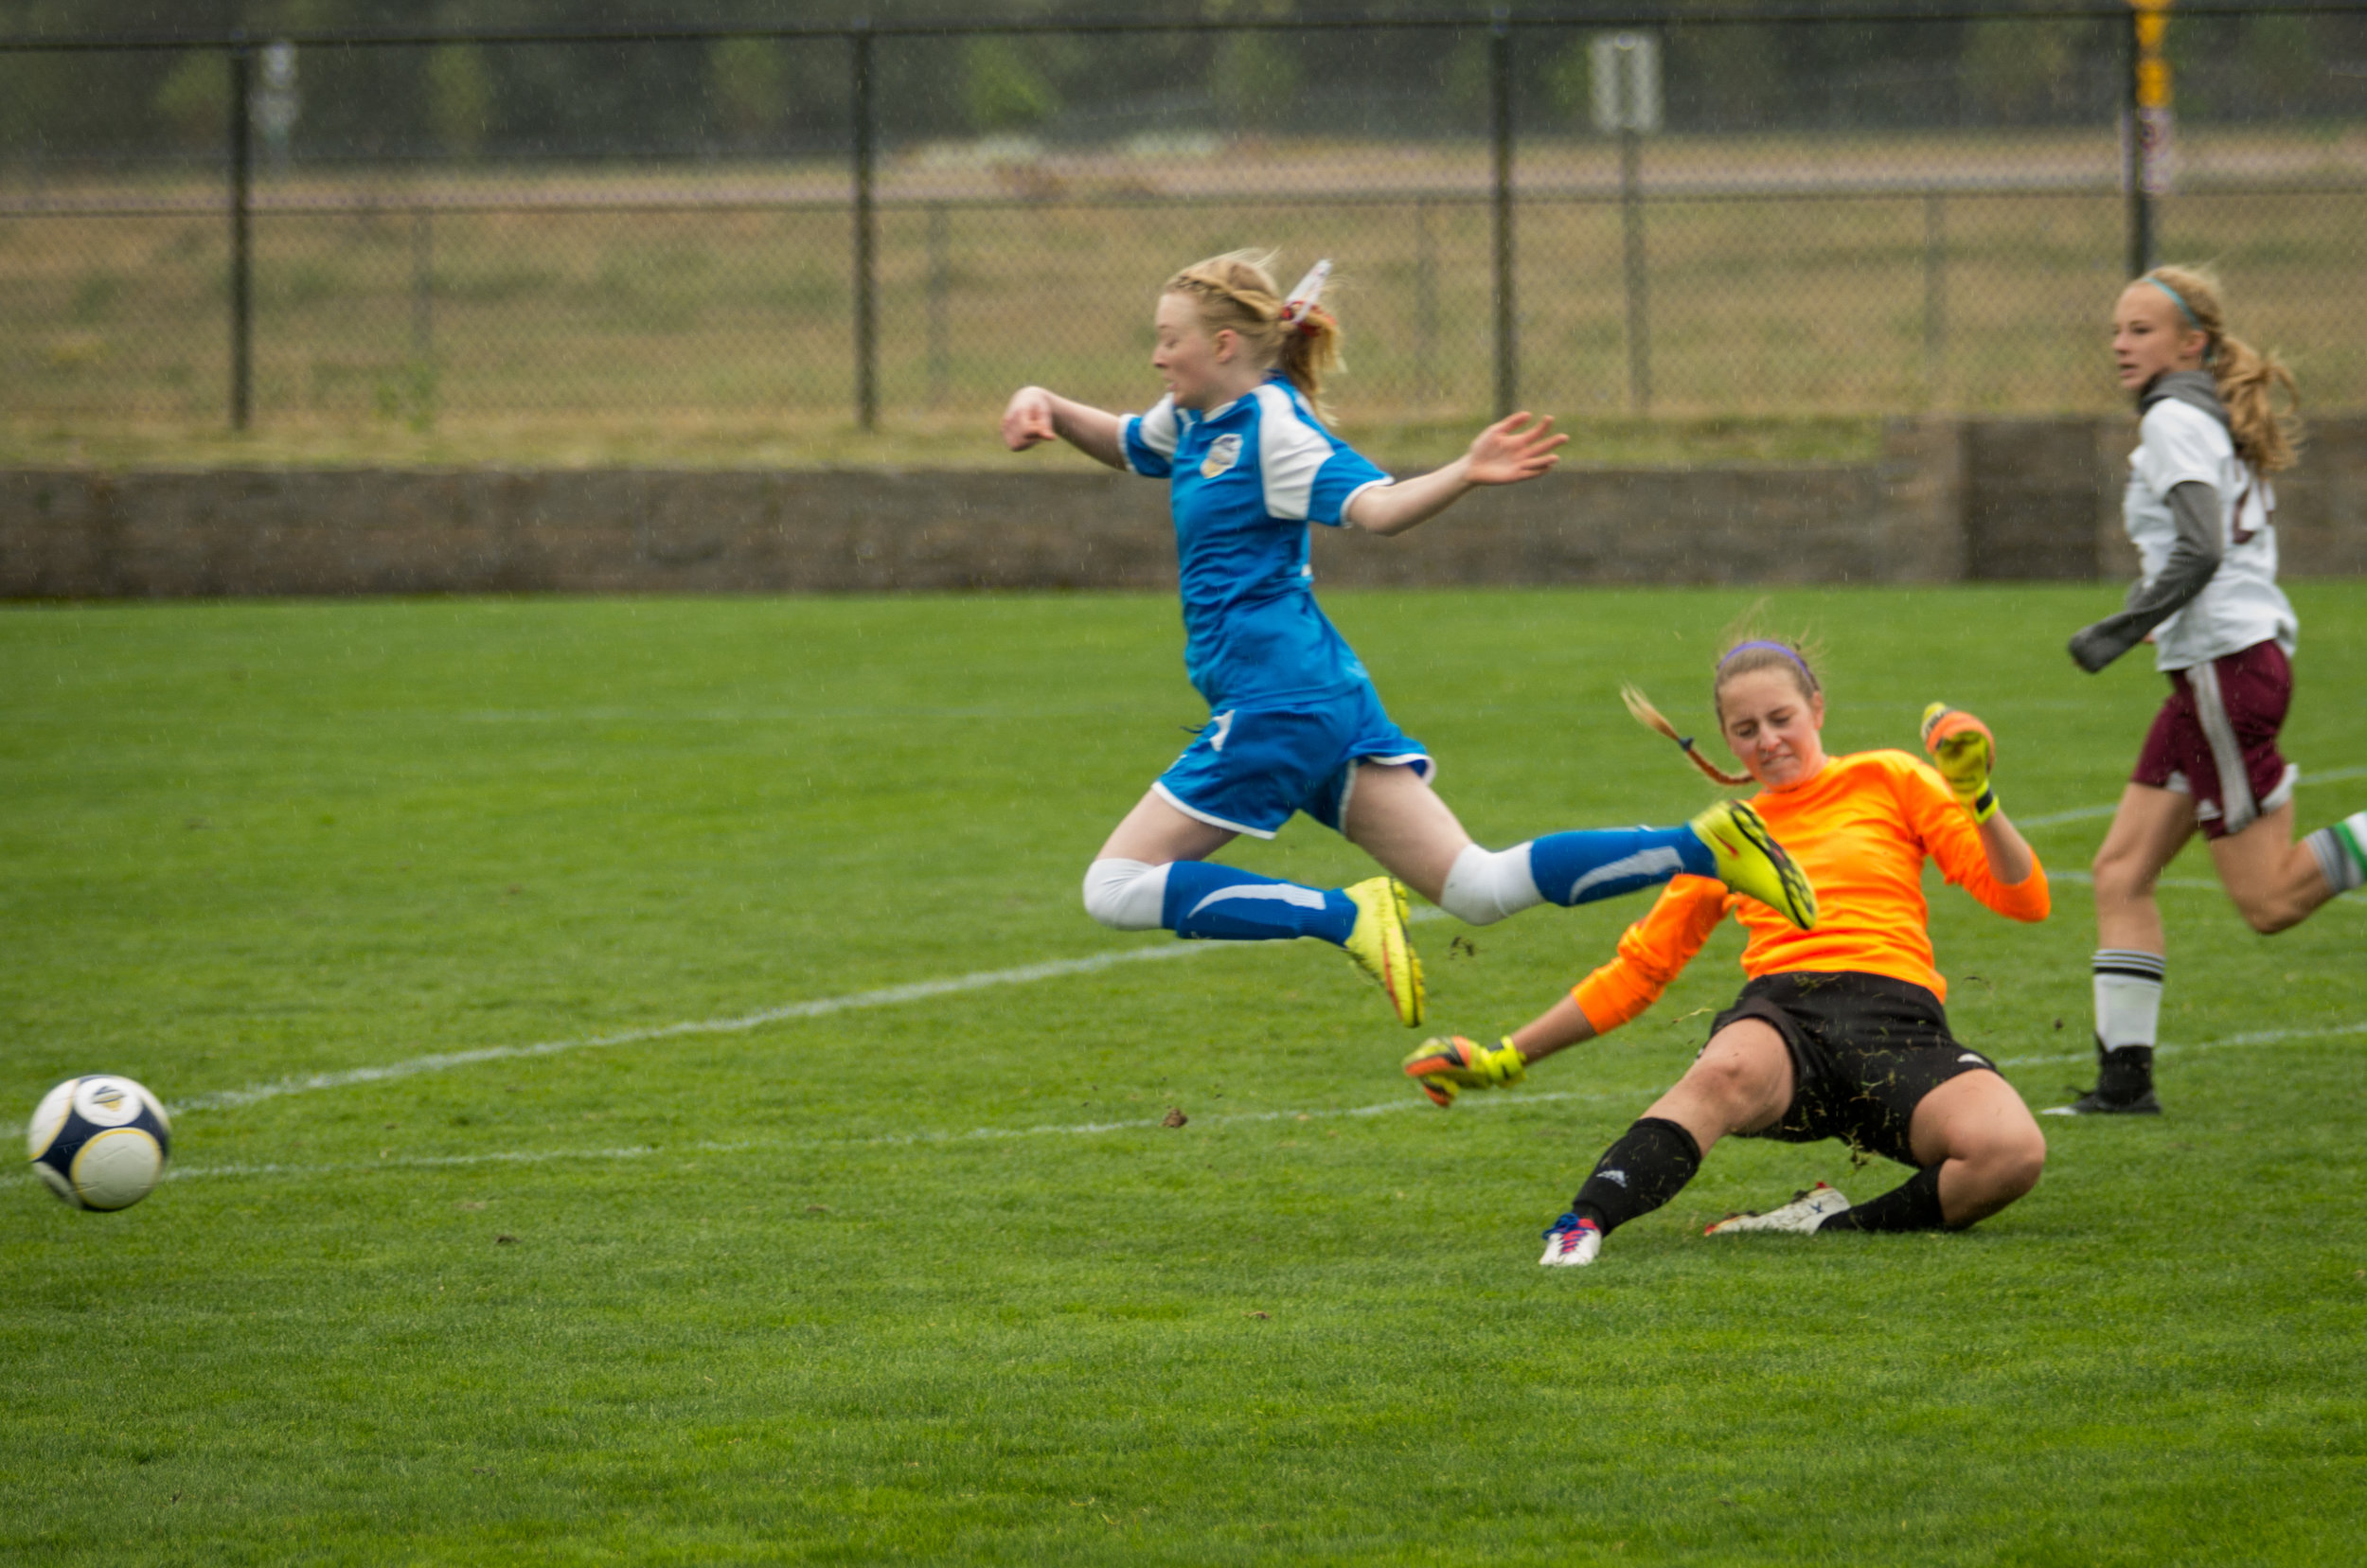 Pretty sure this is the first foul Olivia has committed in two seasons of play.